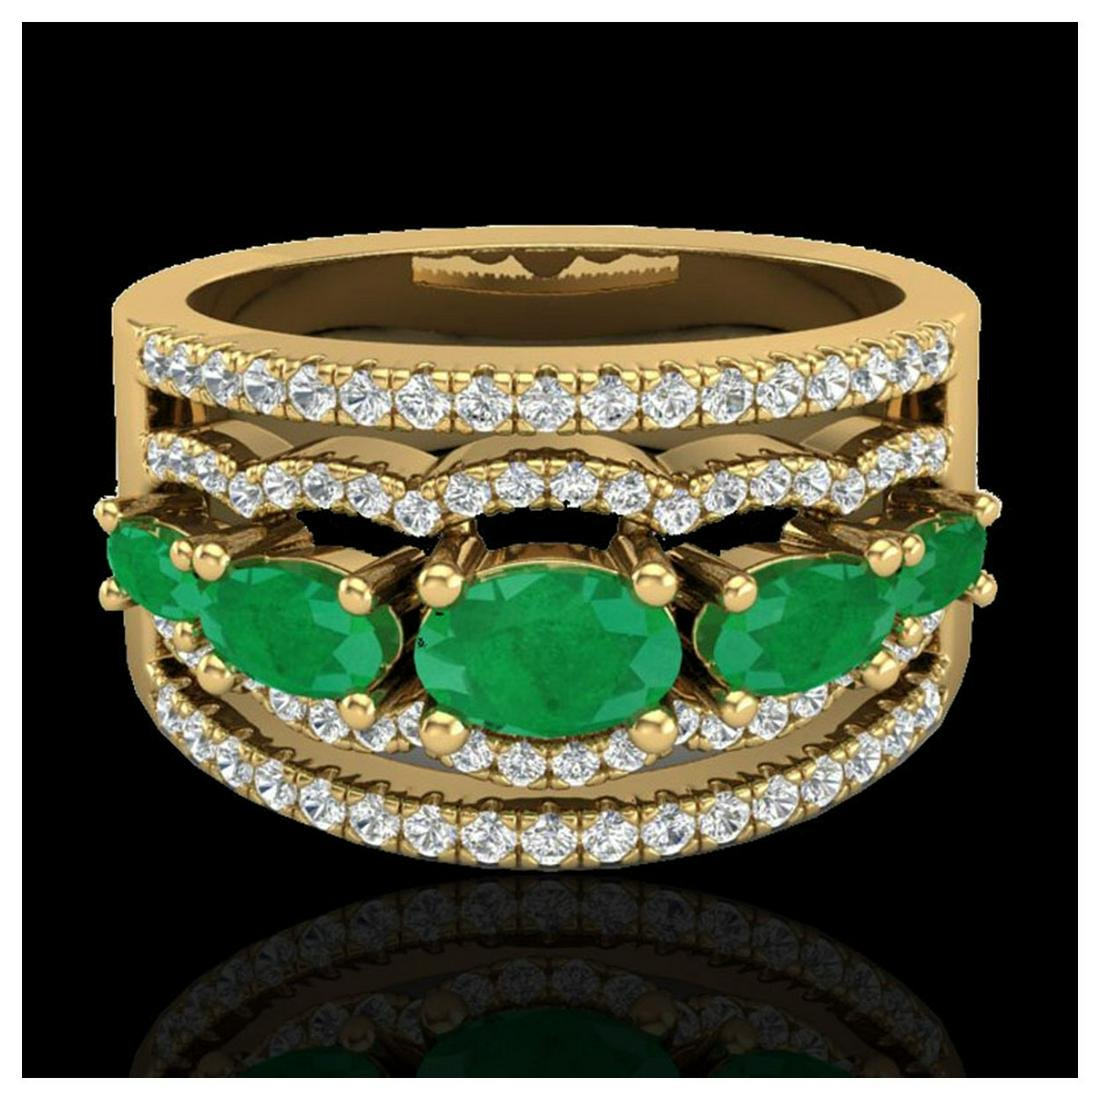 2.25 ctw Emerald & VS/SI Diamond Ring 10K Yellow Gold -